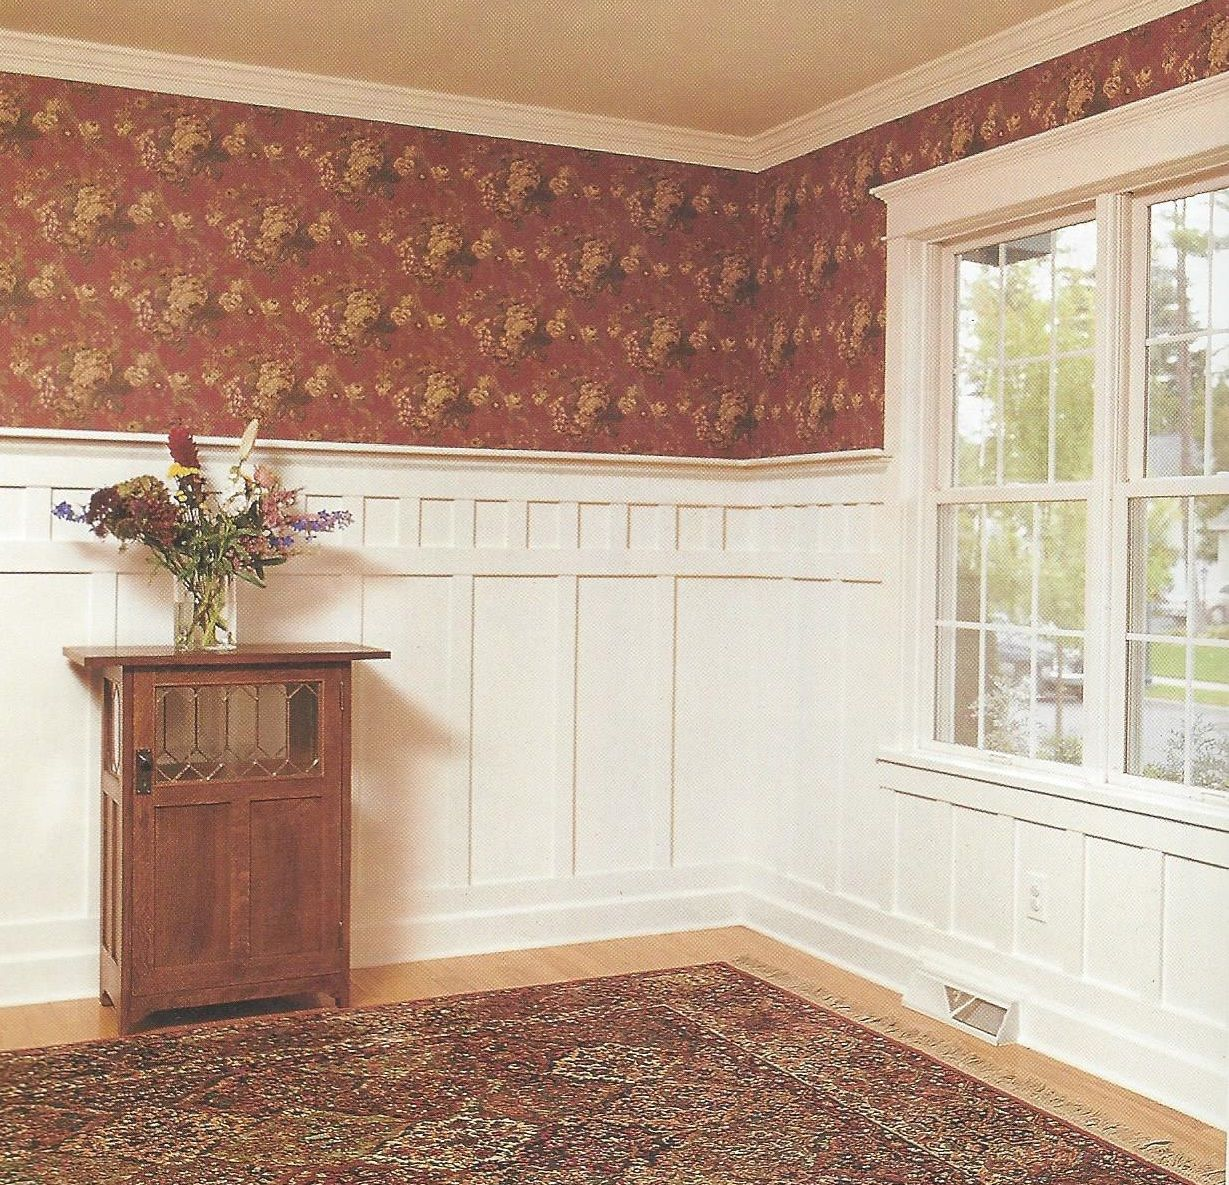 Wainscot solutions inc custom assembled wainscoting - Love The Mission Wainscoting